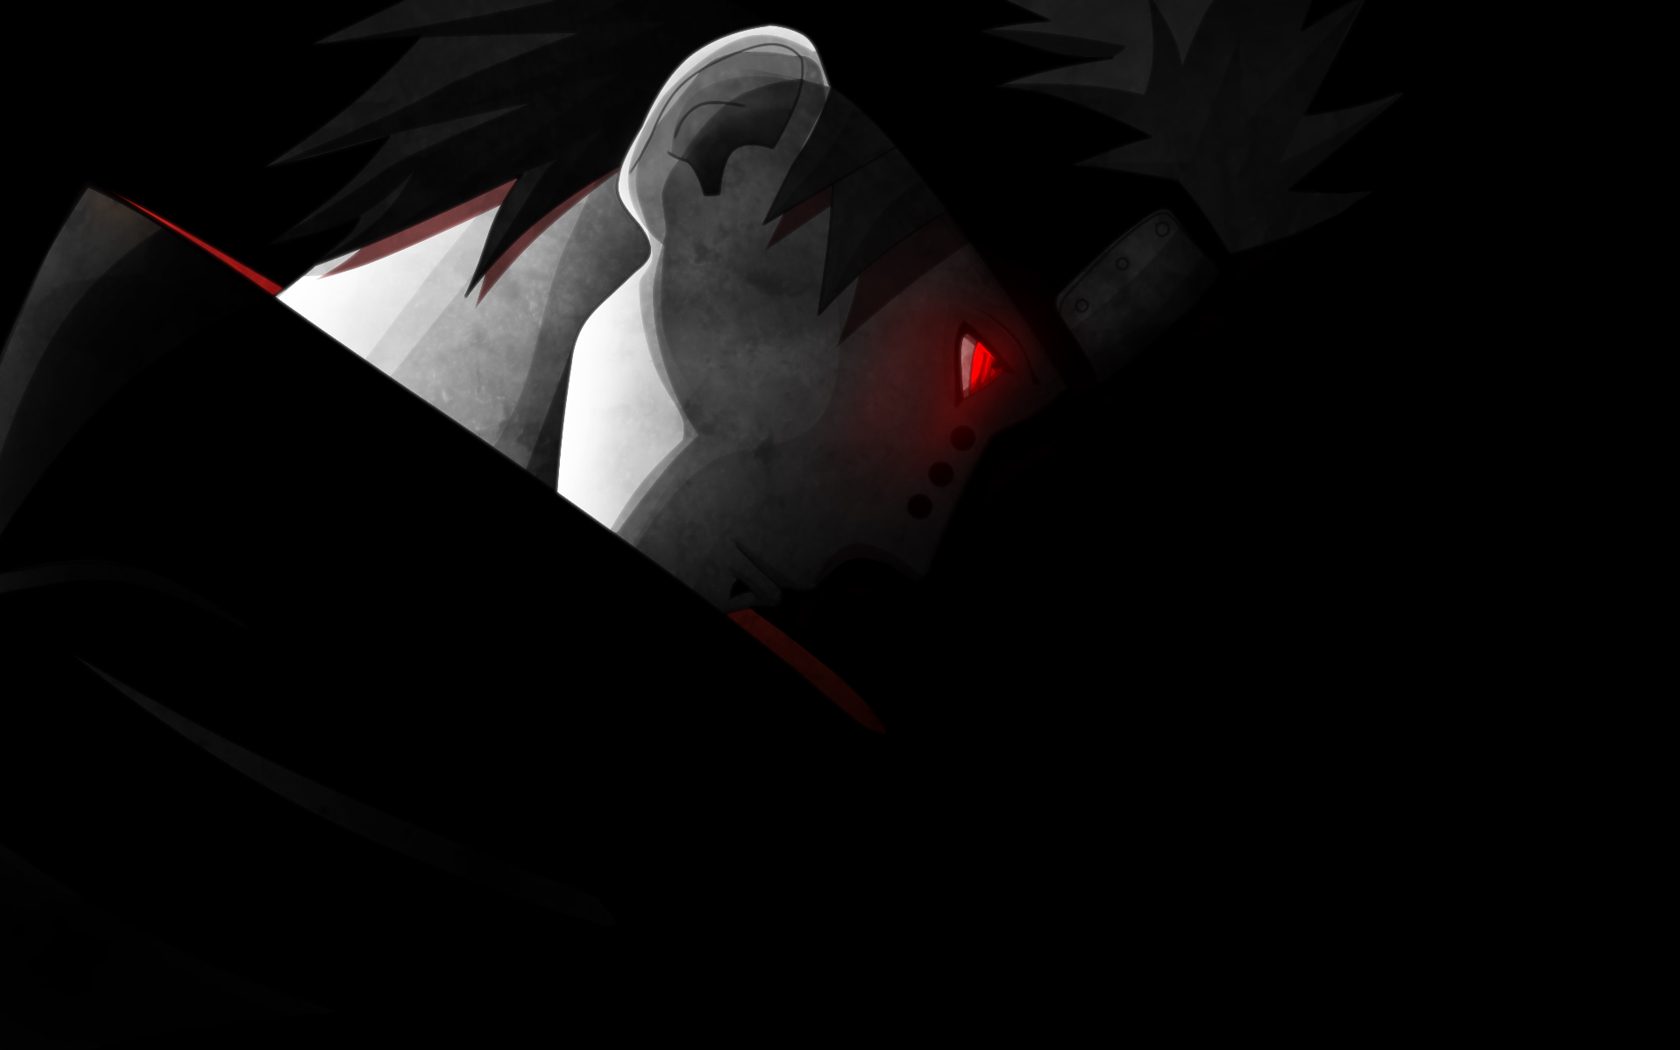 Pain Wallpapers